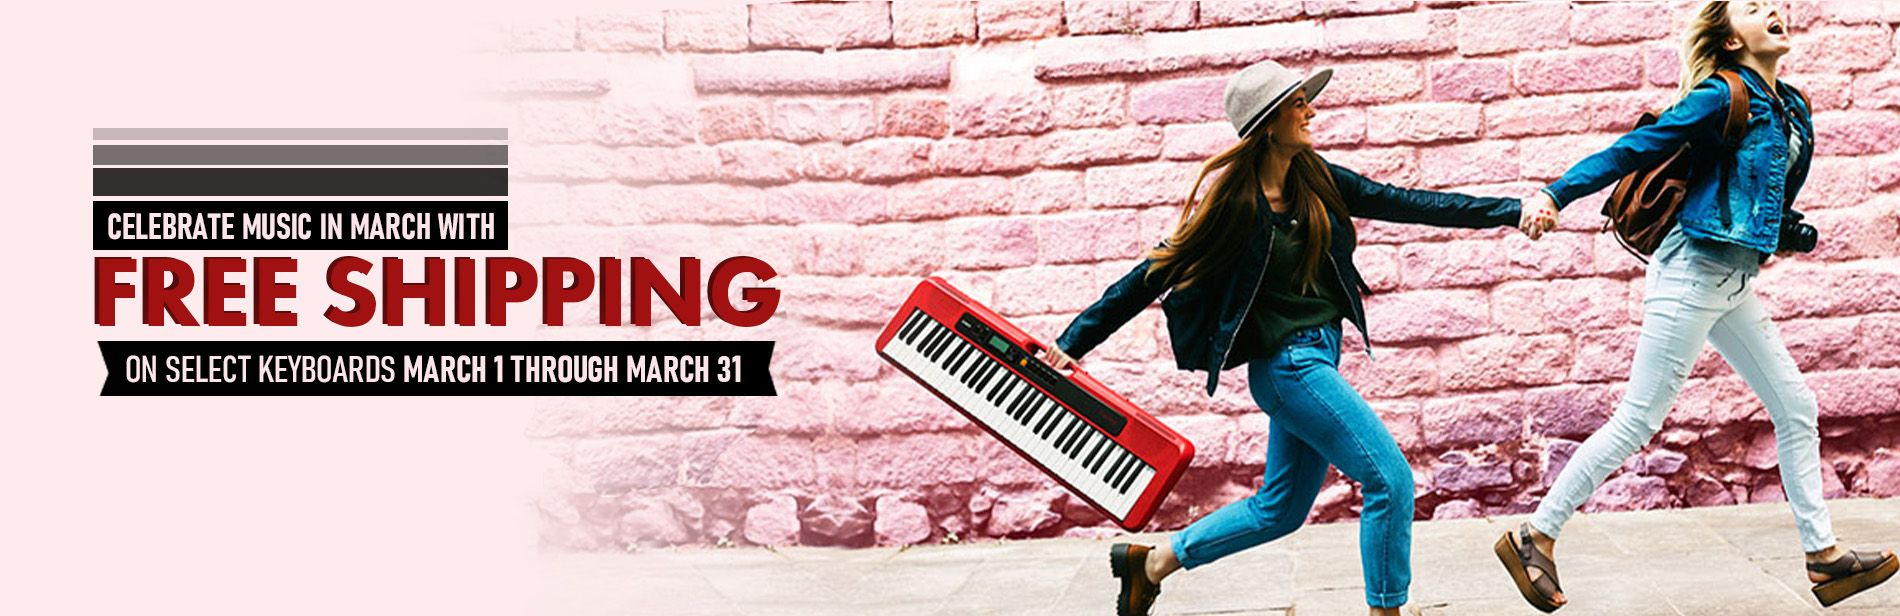 Celebrate music in march with free shipping on select keyboards march 1 through march 31